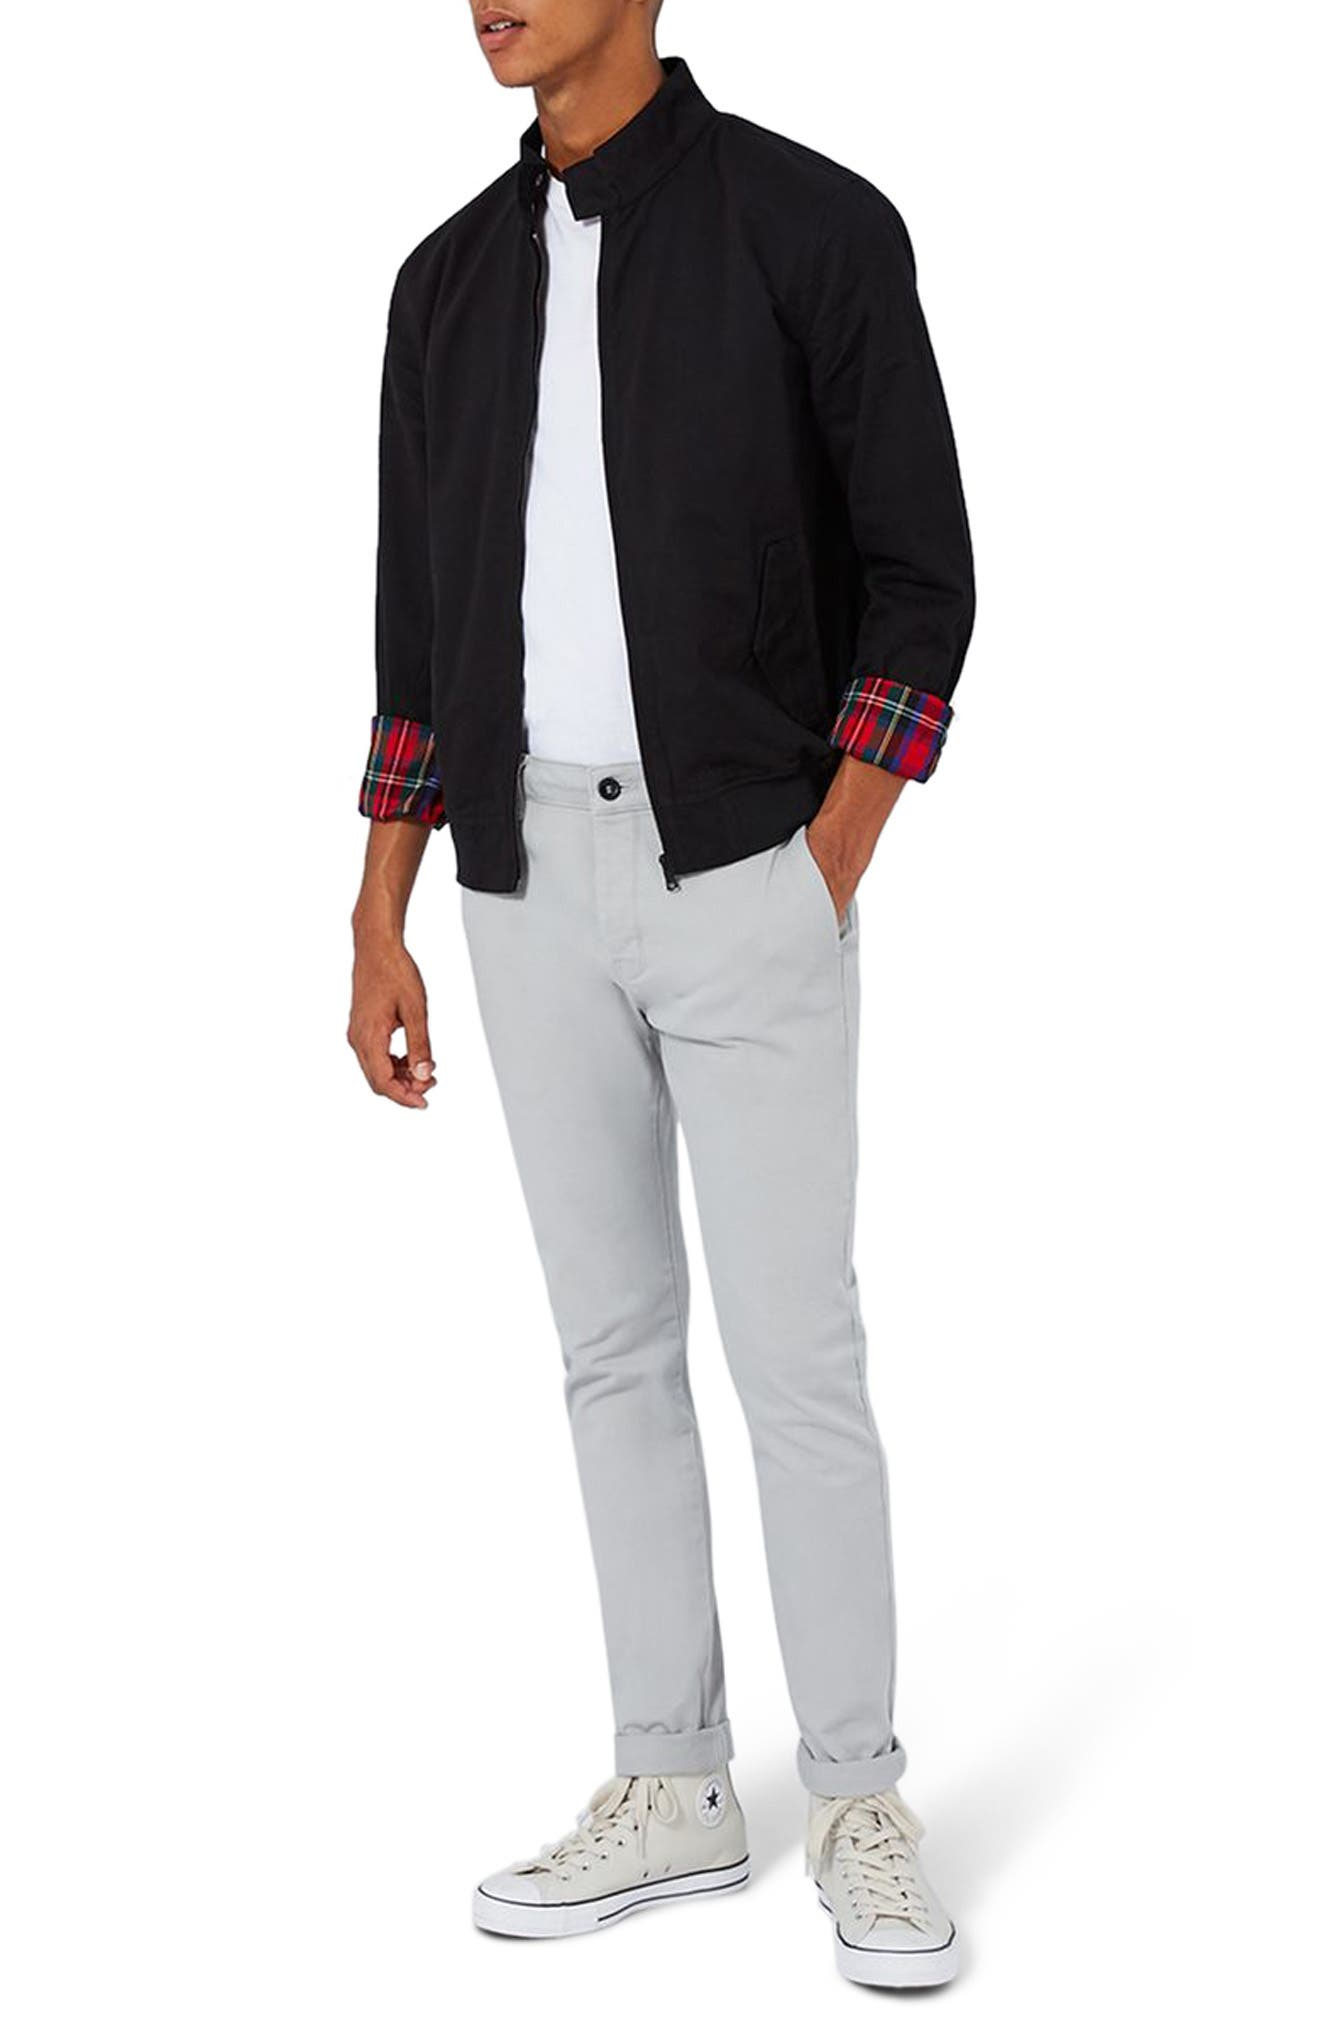 Topman Classic Harrington Jacket